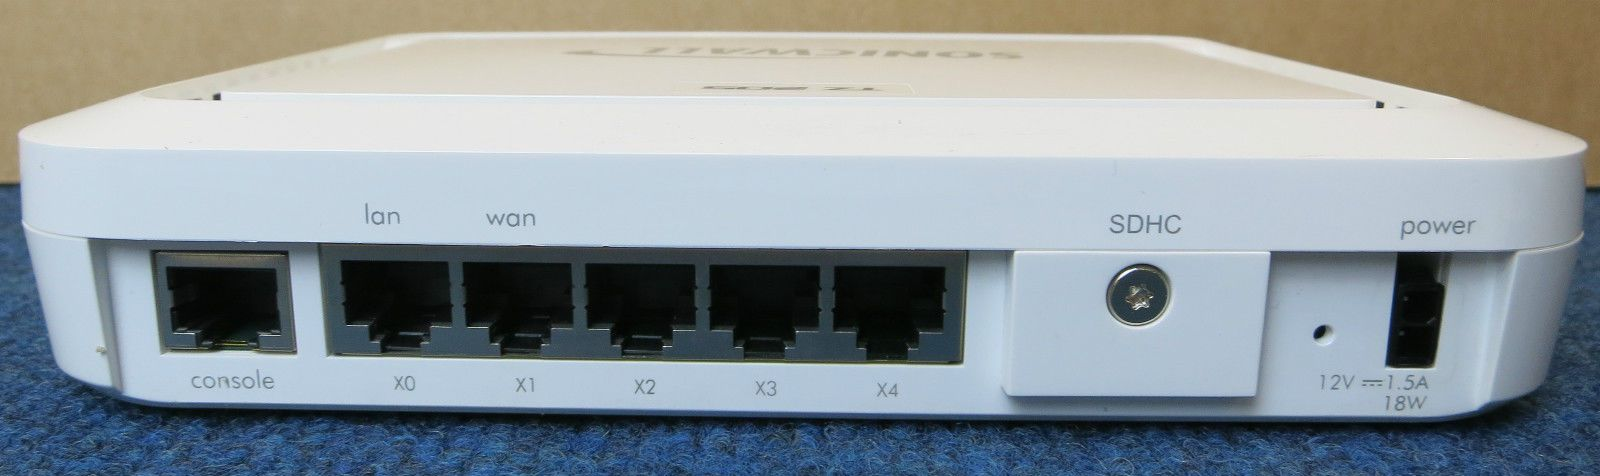 SONICWALL TZ 205 APL22-09D 5-PORT WIRED GIGABIT ETHERNET SECURITY ...